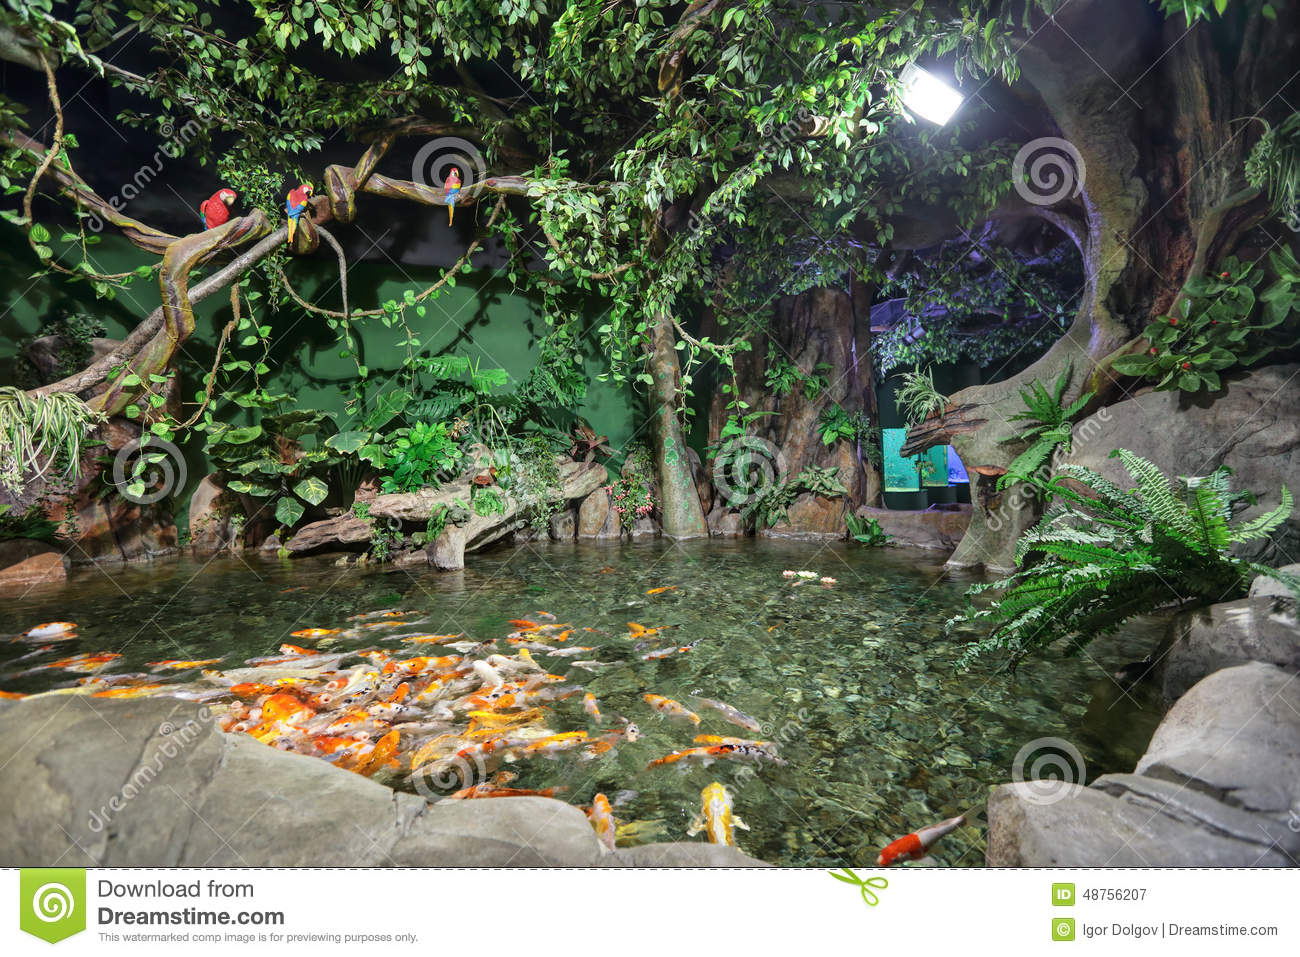 Adler Russia  city pictures gallery : ... adler russia mar one main attractions adler largest russia koi